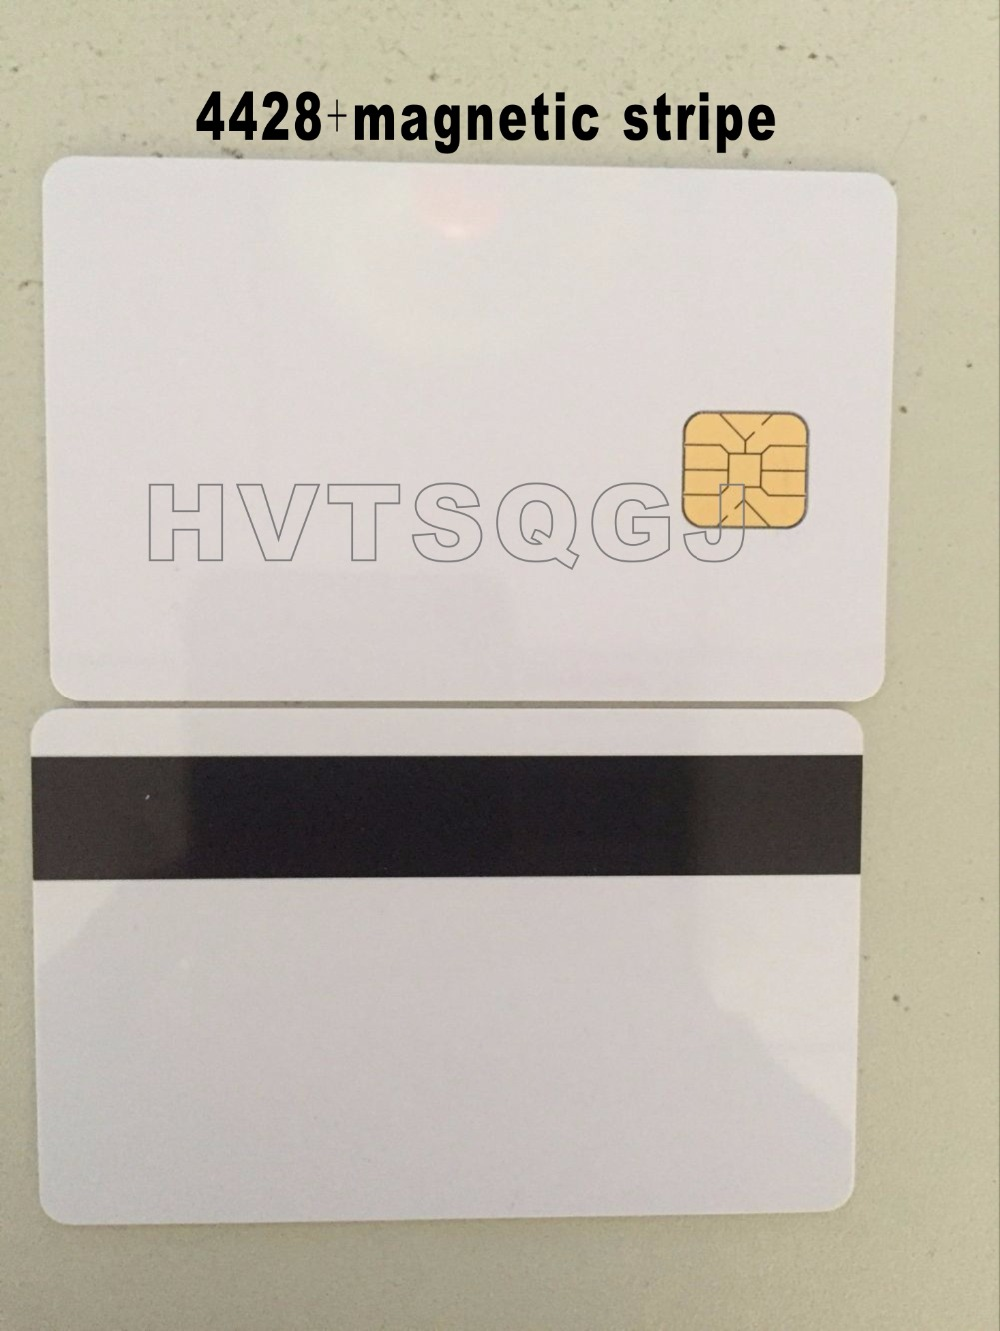 20pcs/lot 2 In 1 Composite Contact Blank/white Memory Smart Ic Sle 4428 Chip Card With Hi-co Magnetic Stripe Free Shipping Ic/id Card